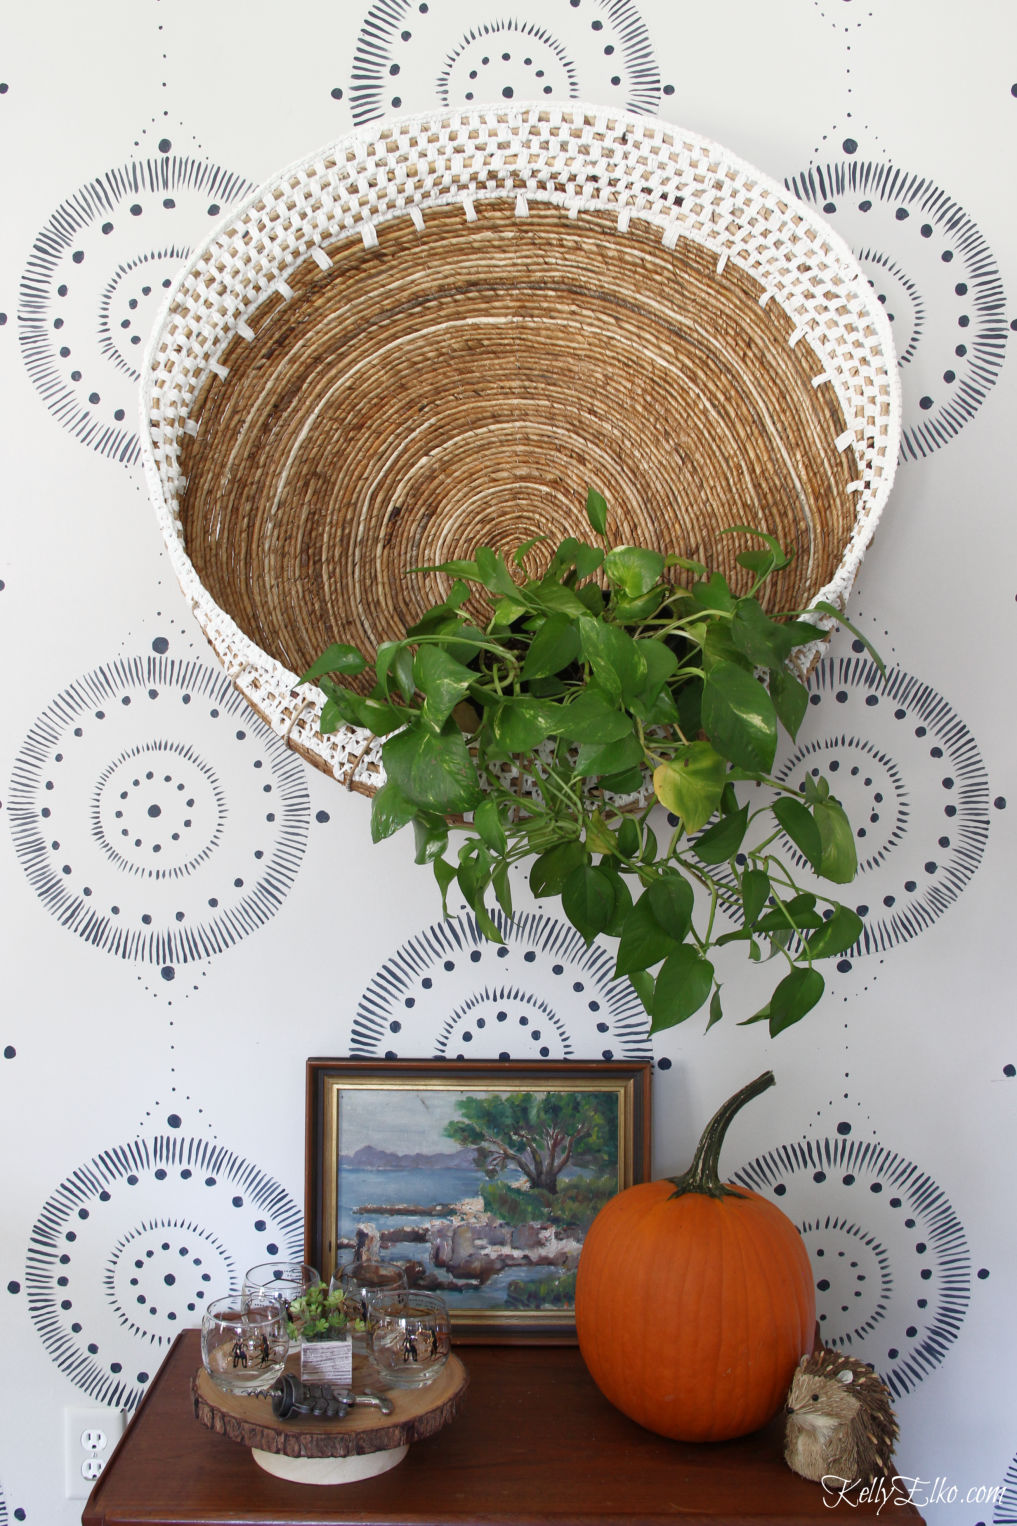 Bar Cart Styling - three different looks! Love the huge wall basket filled with a plant for fall and the vintage finds kellyelko.com #barcart #bohodecor #eclecticdecor #homedecor #falldecor #falldecorating #pumpkins #vintagdecor #plants #planter